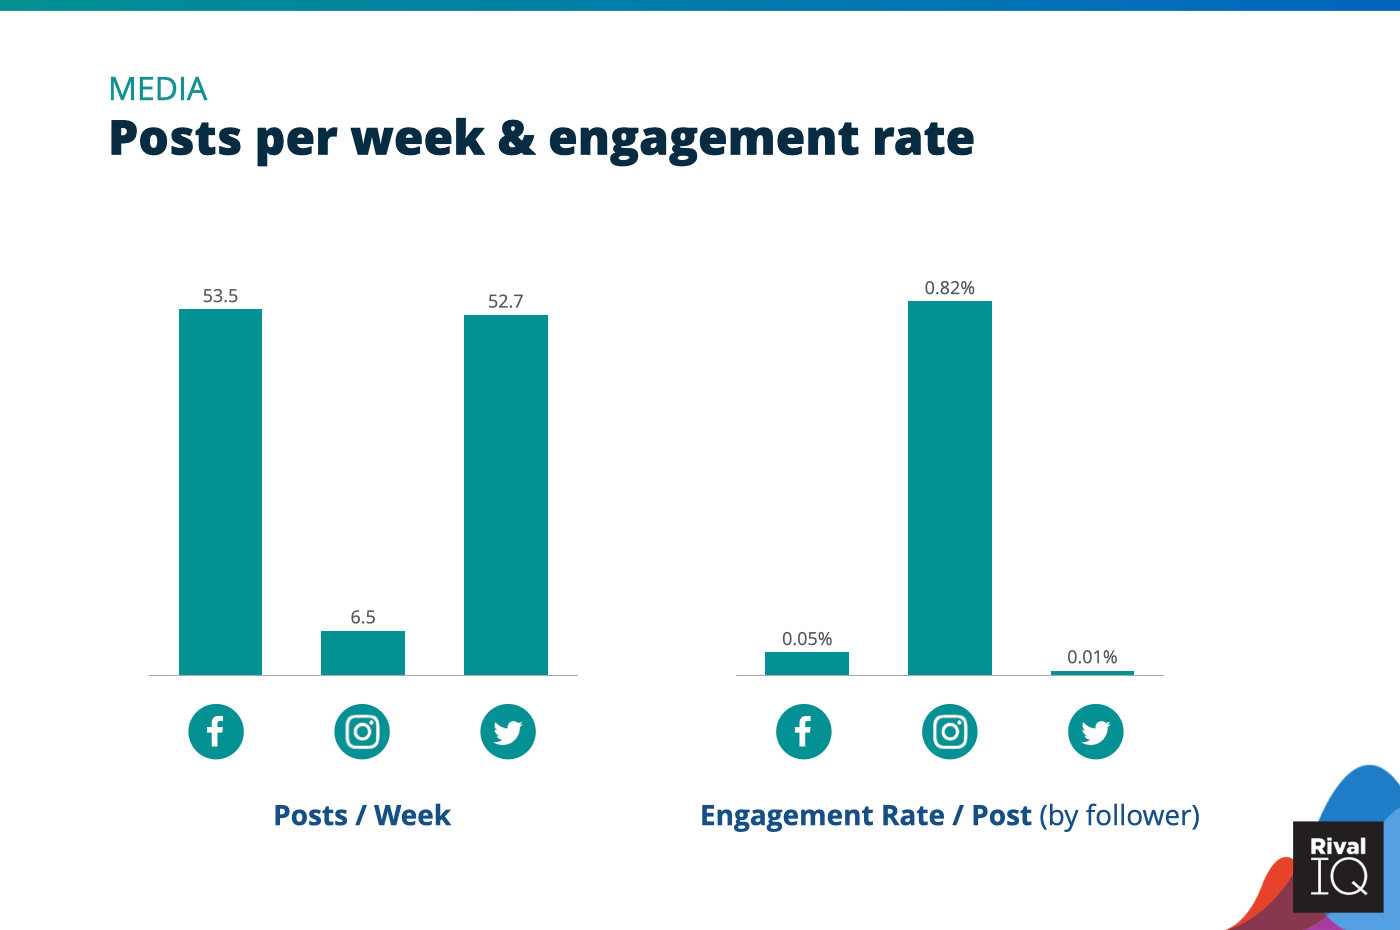 Chart of Posts per week and engagement rate per post across all channels, Media